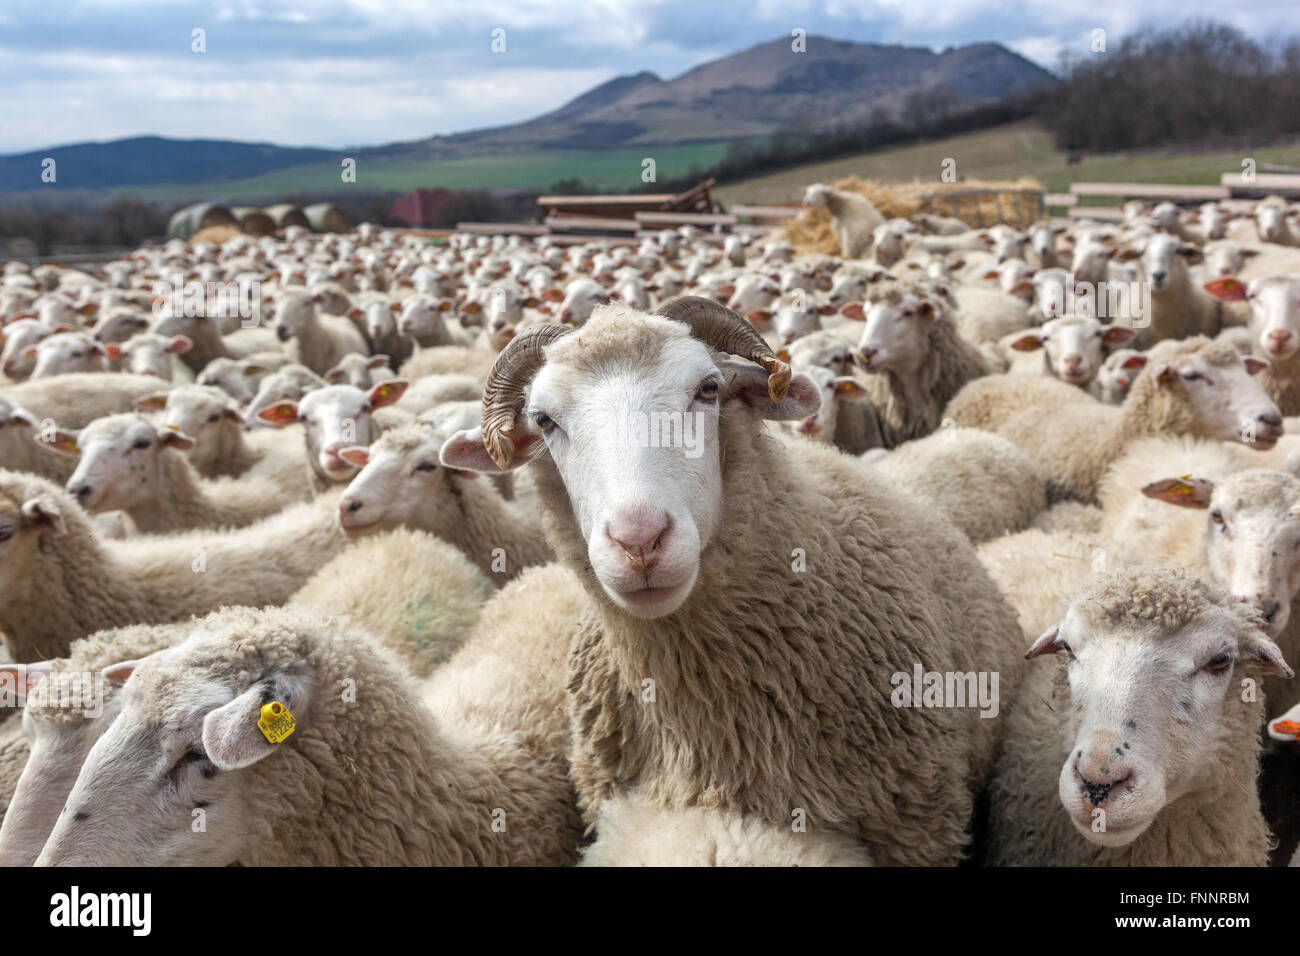 Ram amid flocks of sheep herd, the landscape of the Central Bohemian Uplands, Czech Republic - Stock Image